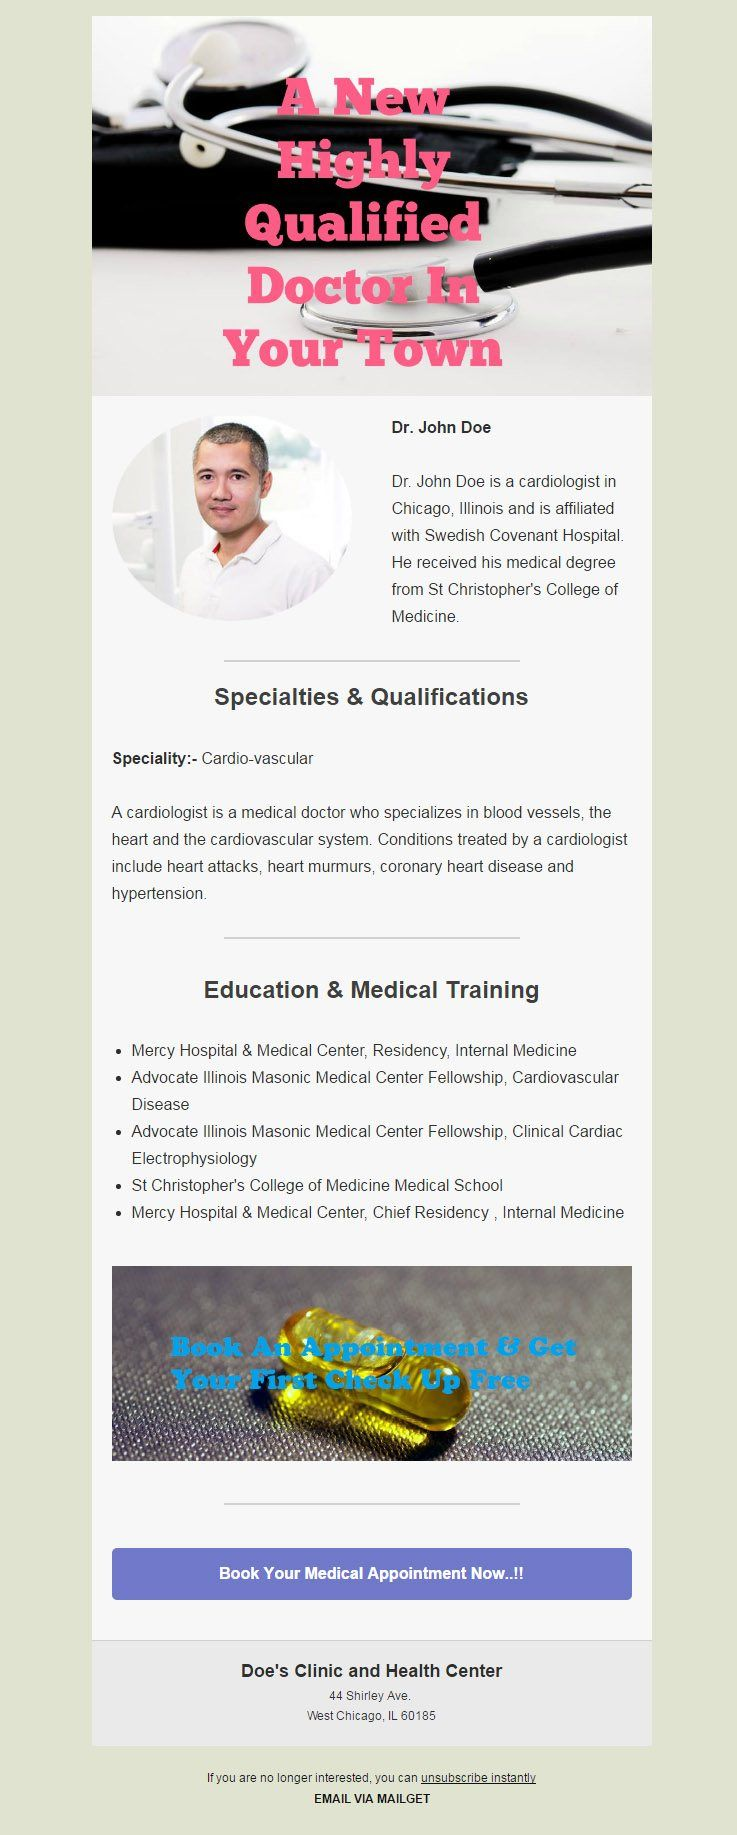 A ready made doctor email template that physicians